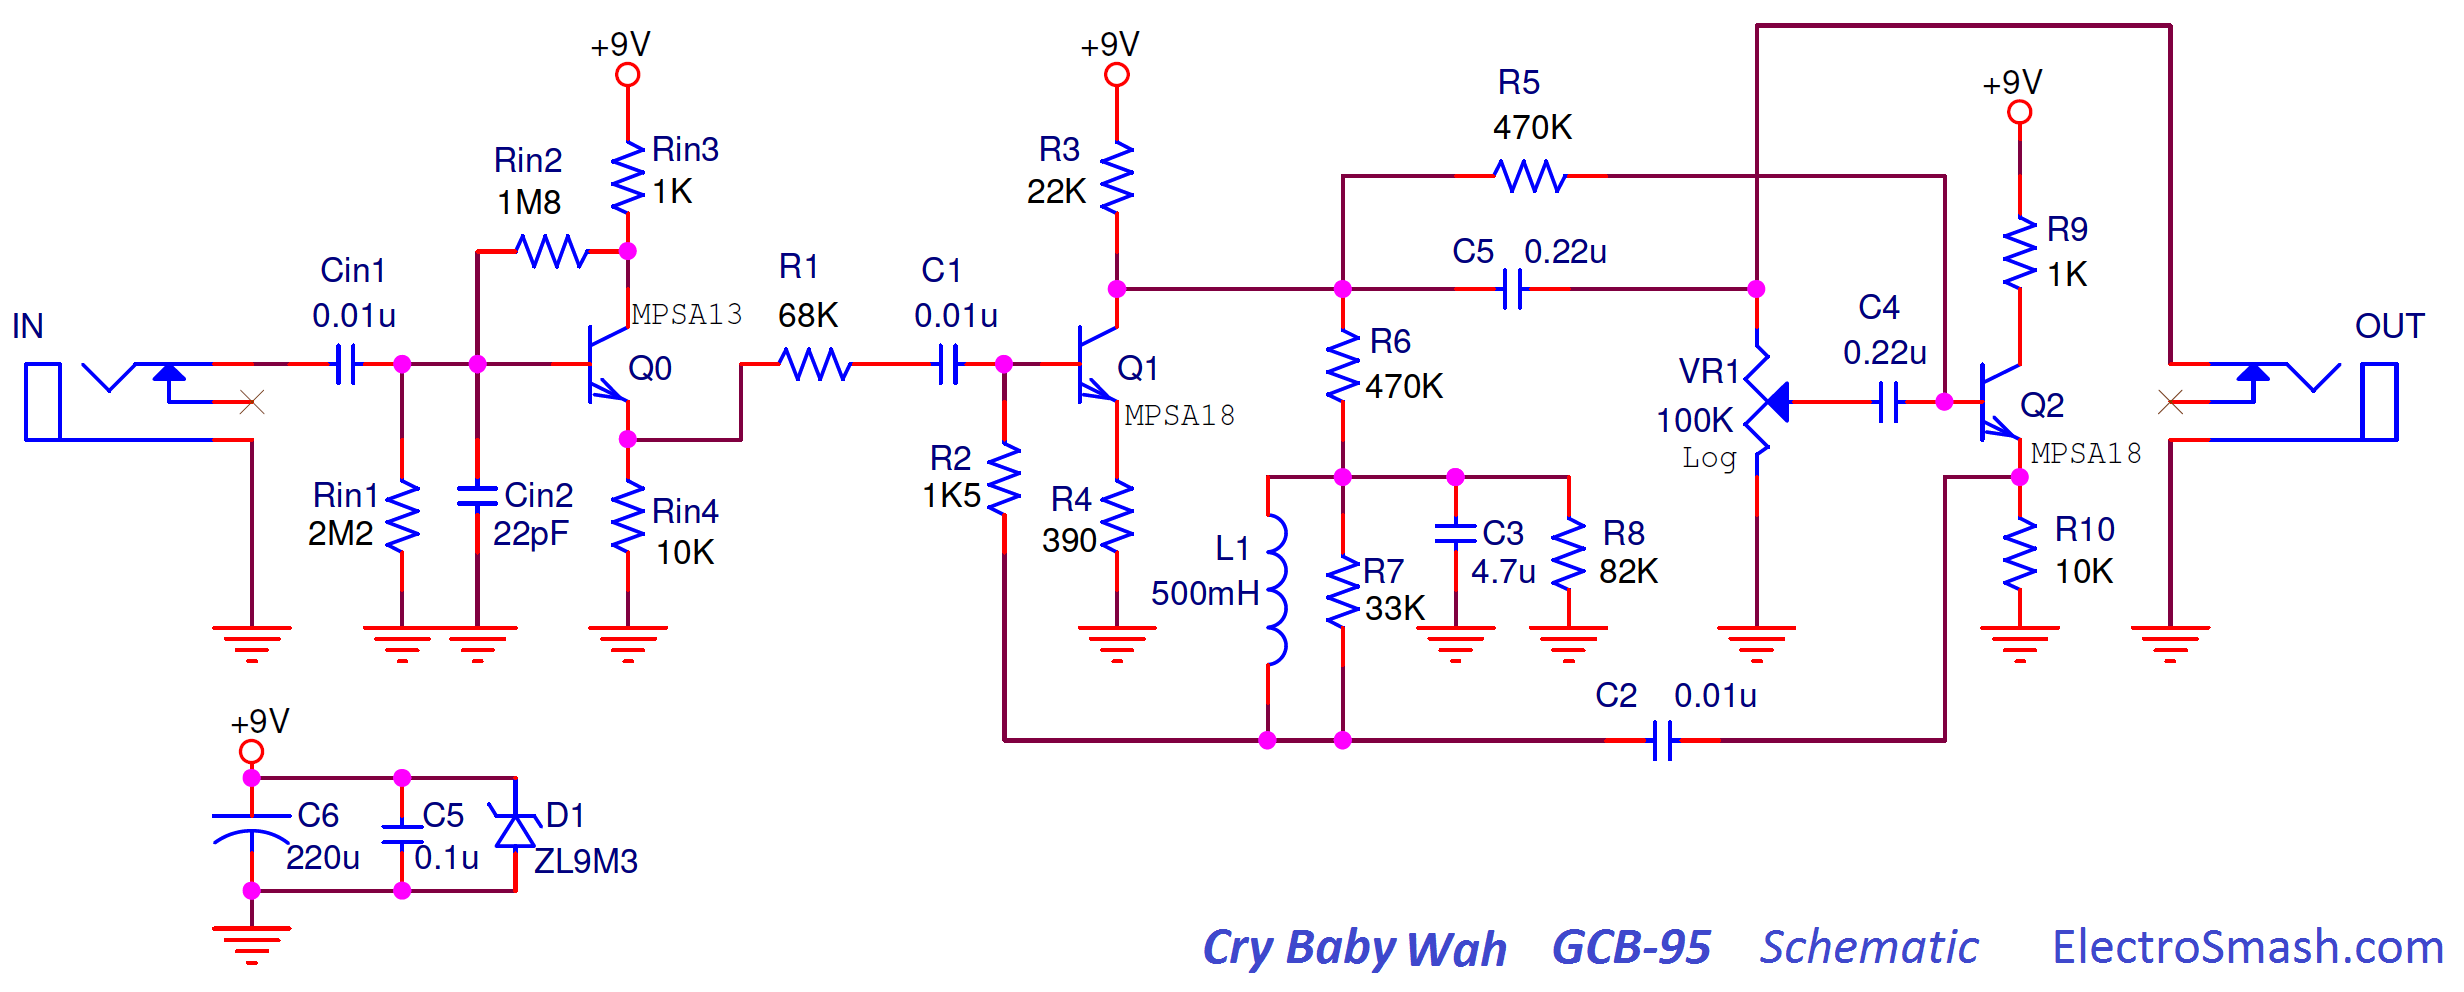 cry baby wah gcb 95 schematic electrosmash dunlop crybaby gcb 95 circuit analysis dunlop crybaby wiring diagram at webbmarketing.co